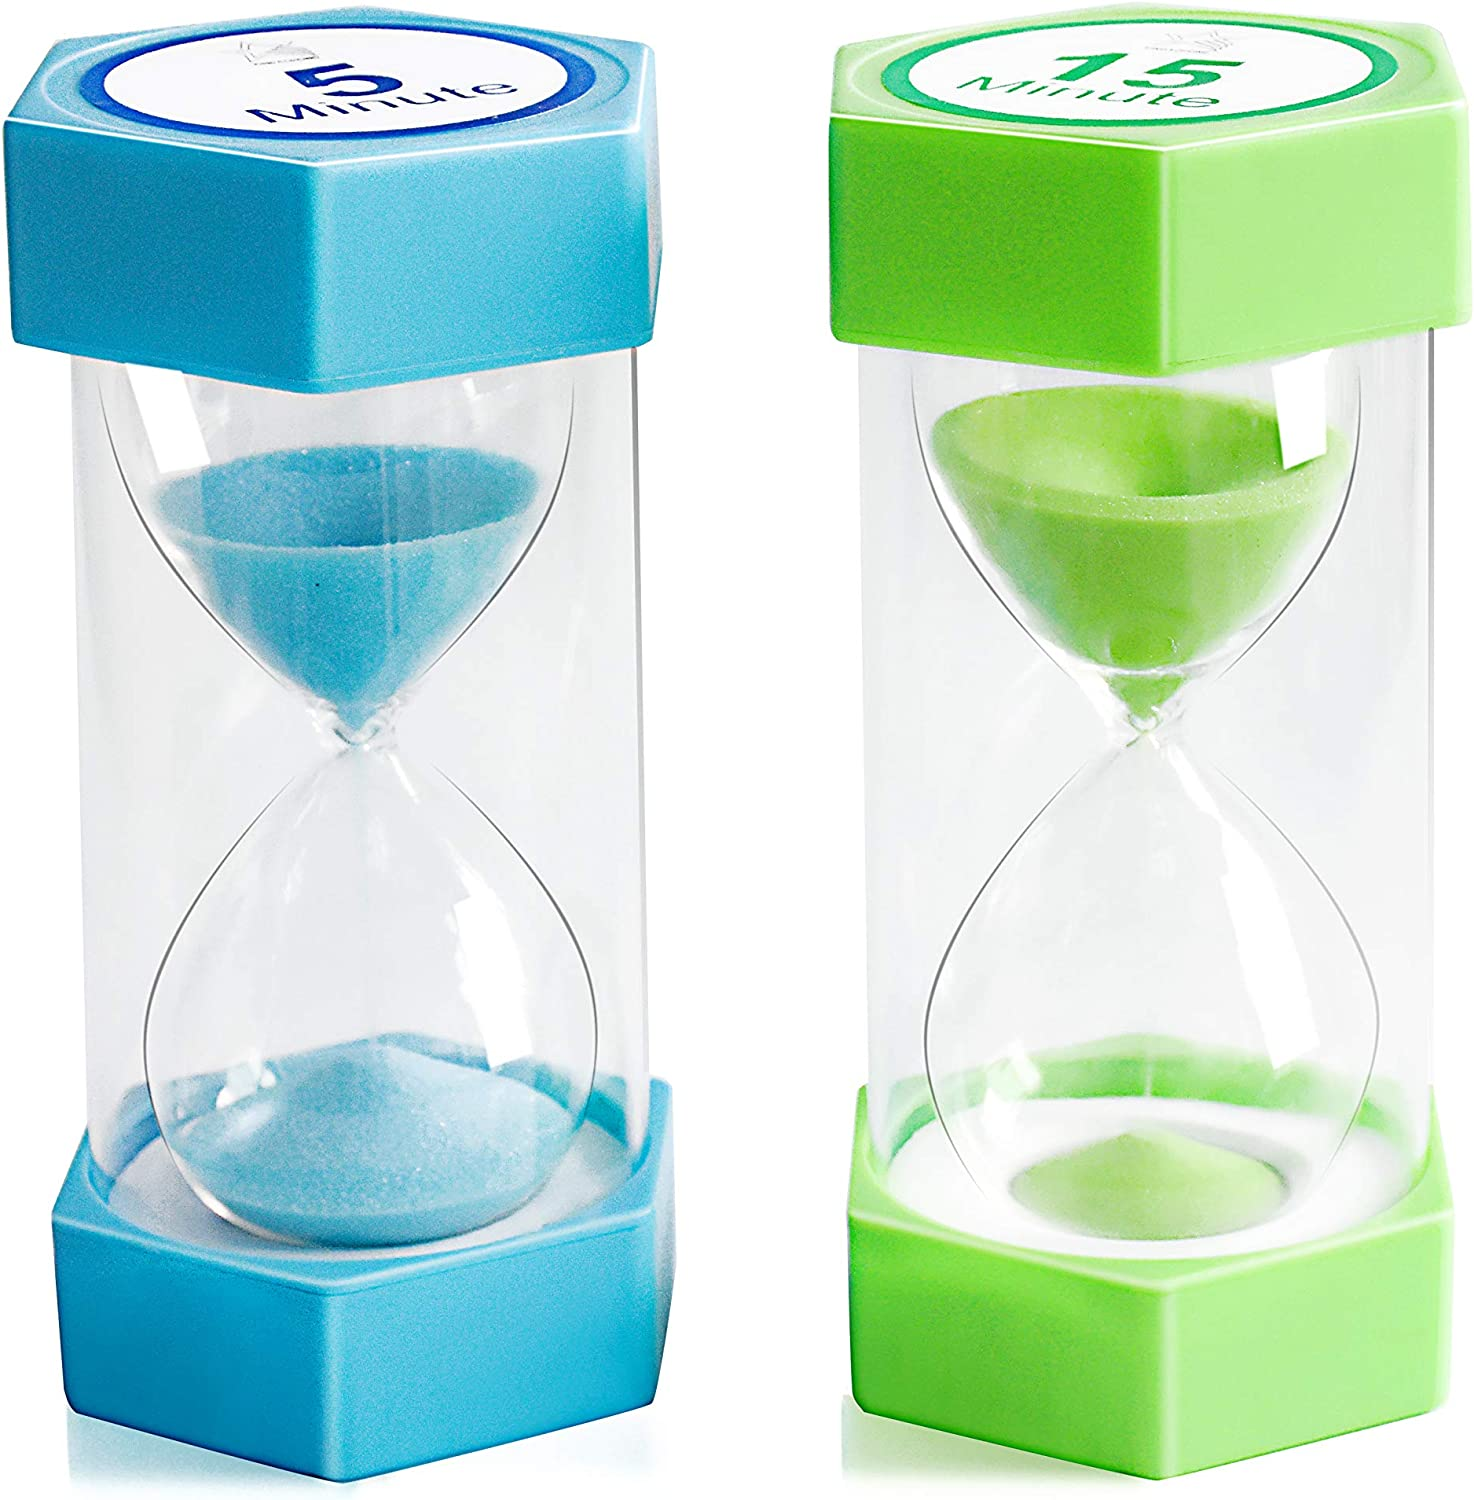 1 3 or 5 Minute Sand Egg Timer Teaching Games Teeth Brushing Timing Seconds 2